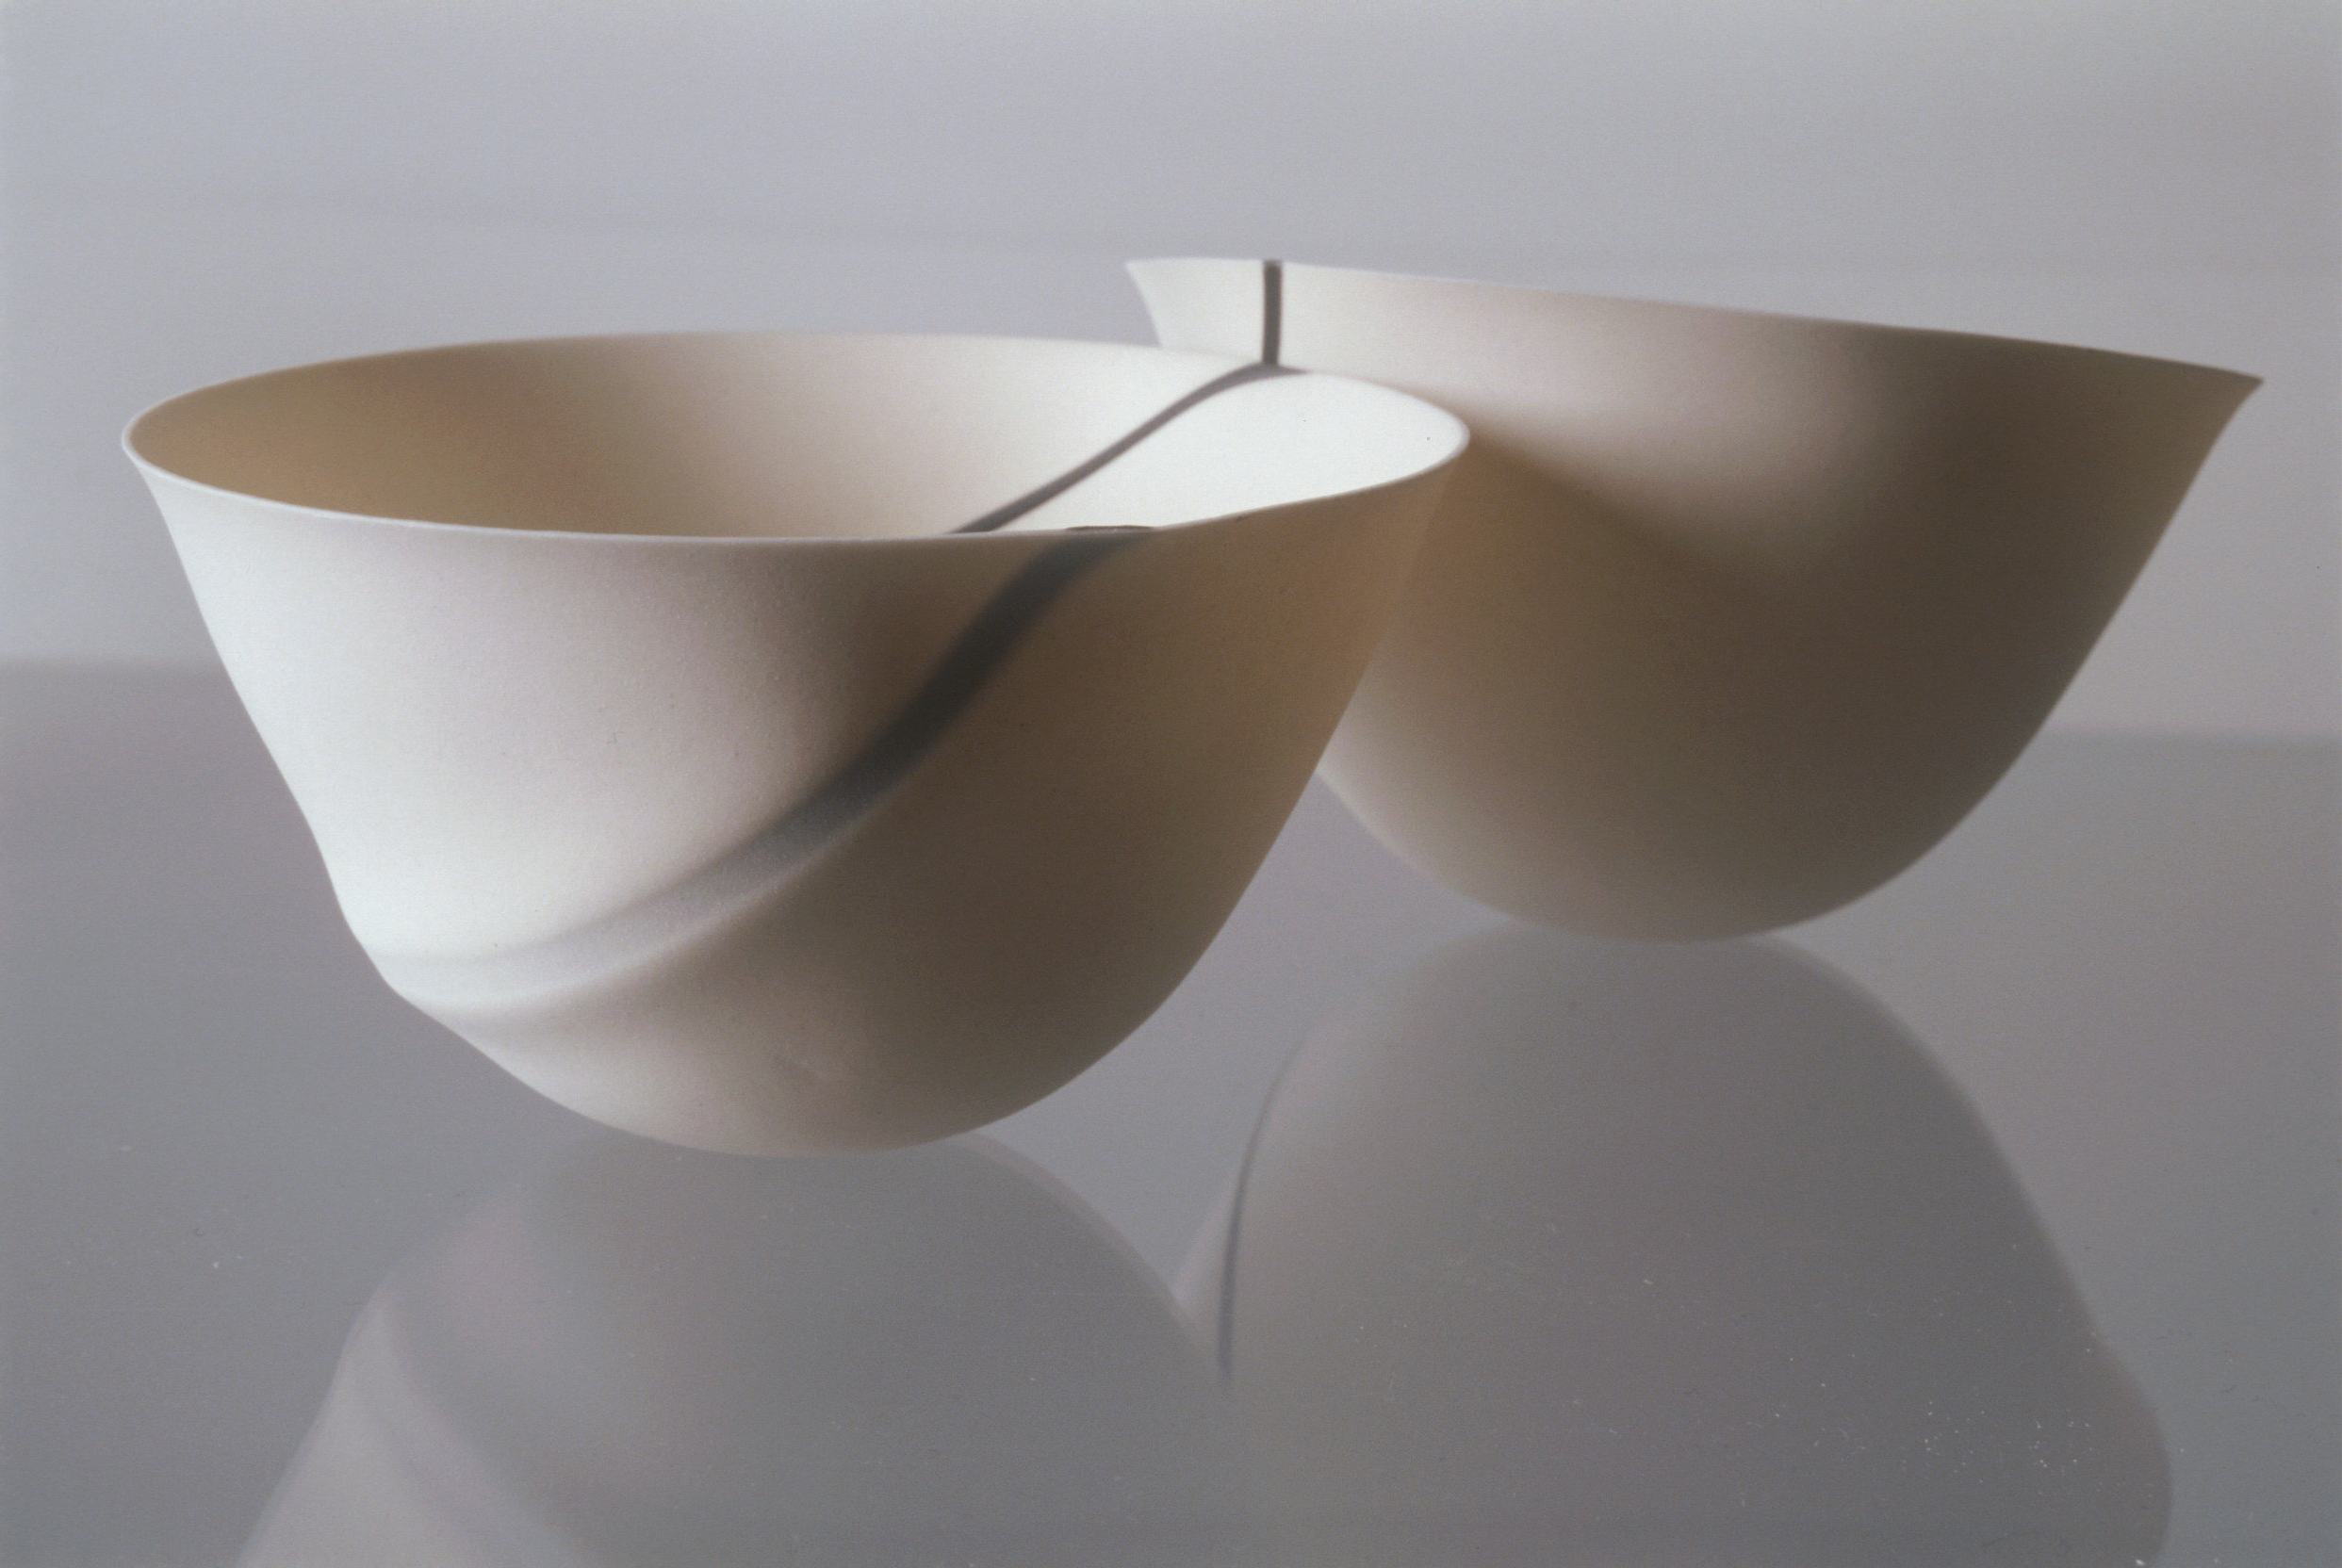 TRACE  SPUN PORCELAIN BOWLS  SMALL BLACK BONE CHINA IN-OUT  PHOTO: GRAHAM MURRELL